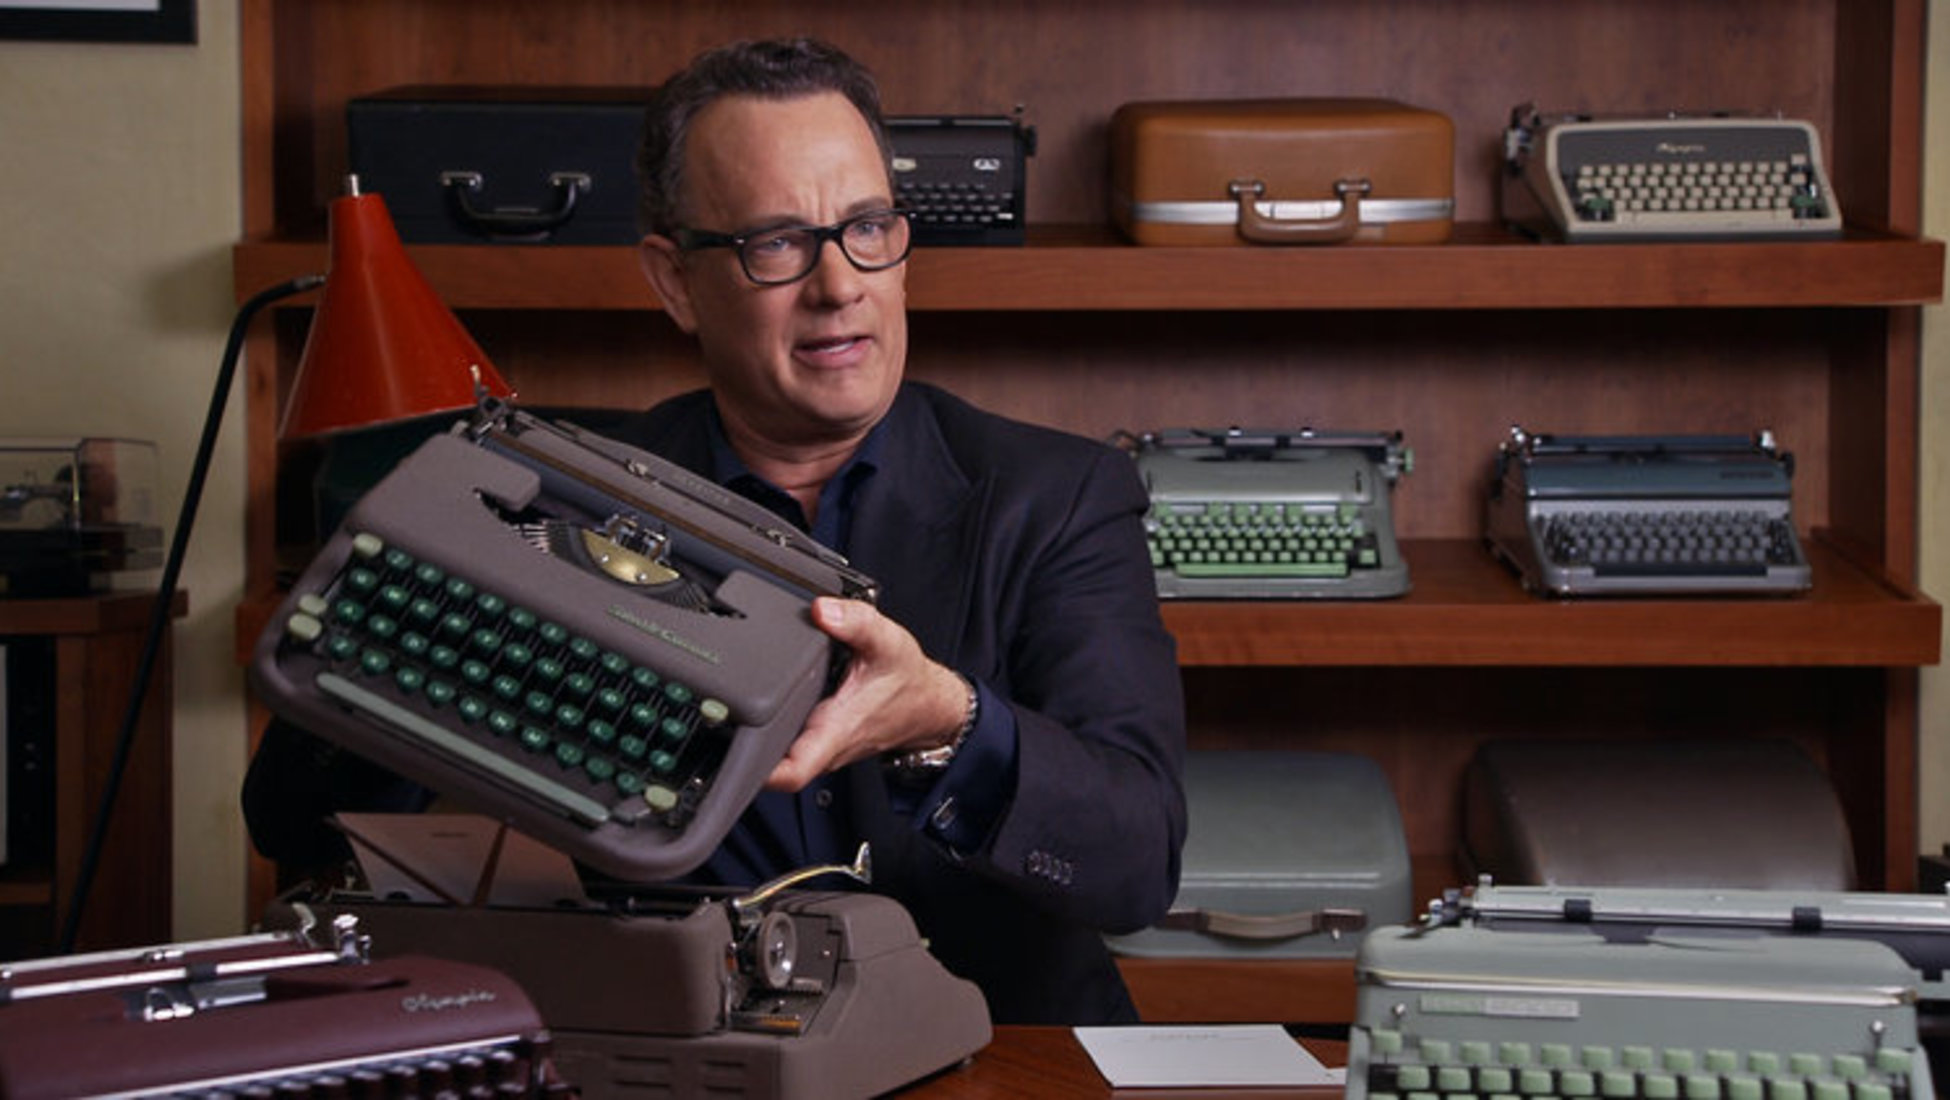 Hanks managed to get a bargain from the man and bought a Hermes 2000: the cornerstone of a collection that nowadays comprises of more than 100 typewriters.